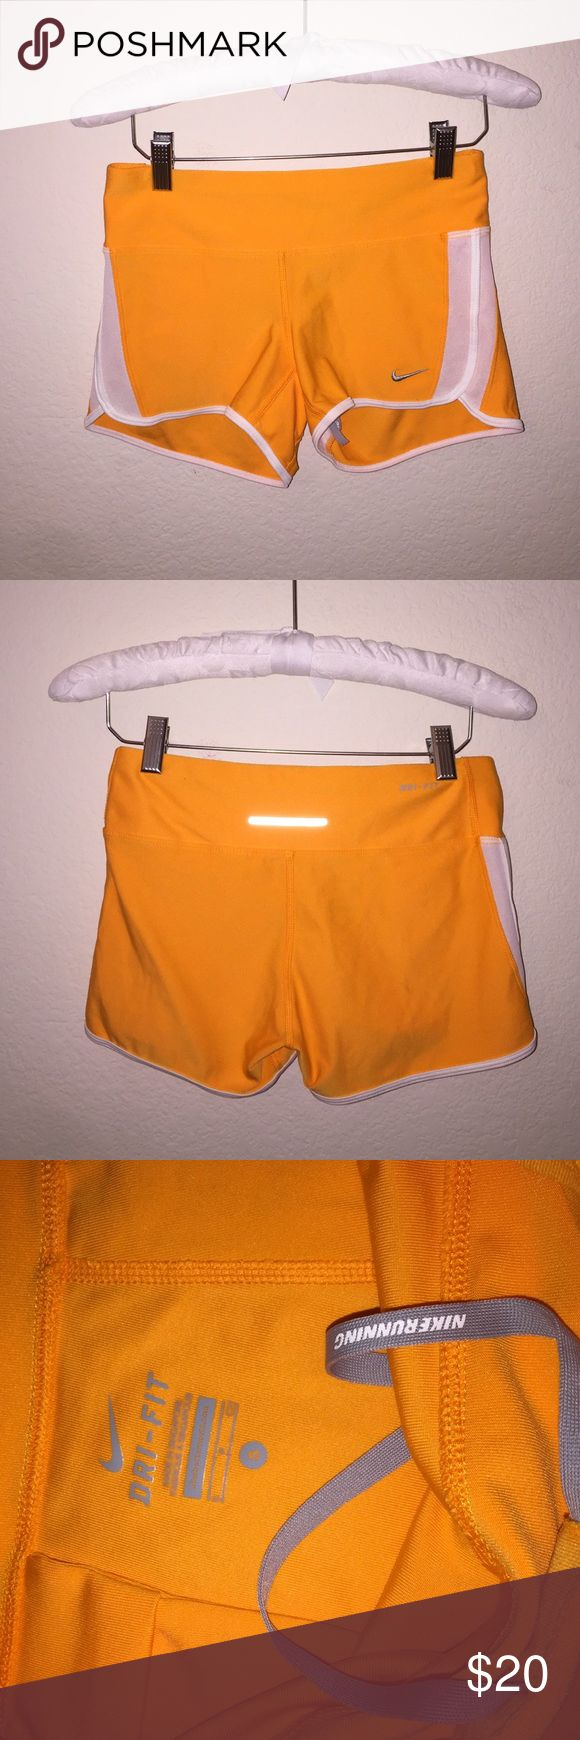 Tangerine Nike Shorts Cotton fitted Nike jogging shorts. Size is a S, item includes drawstring! Nike Shorts